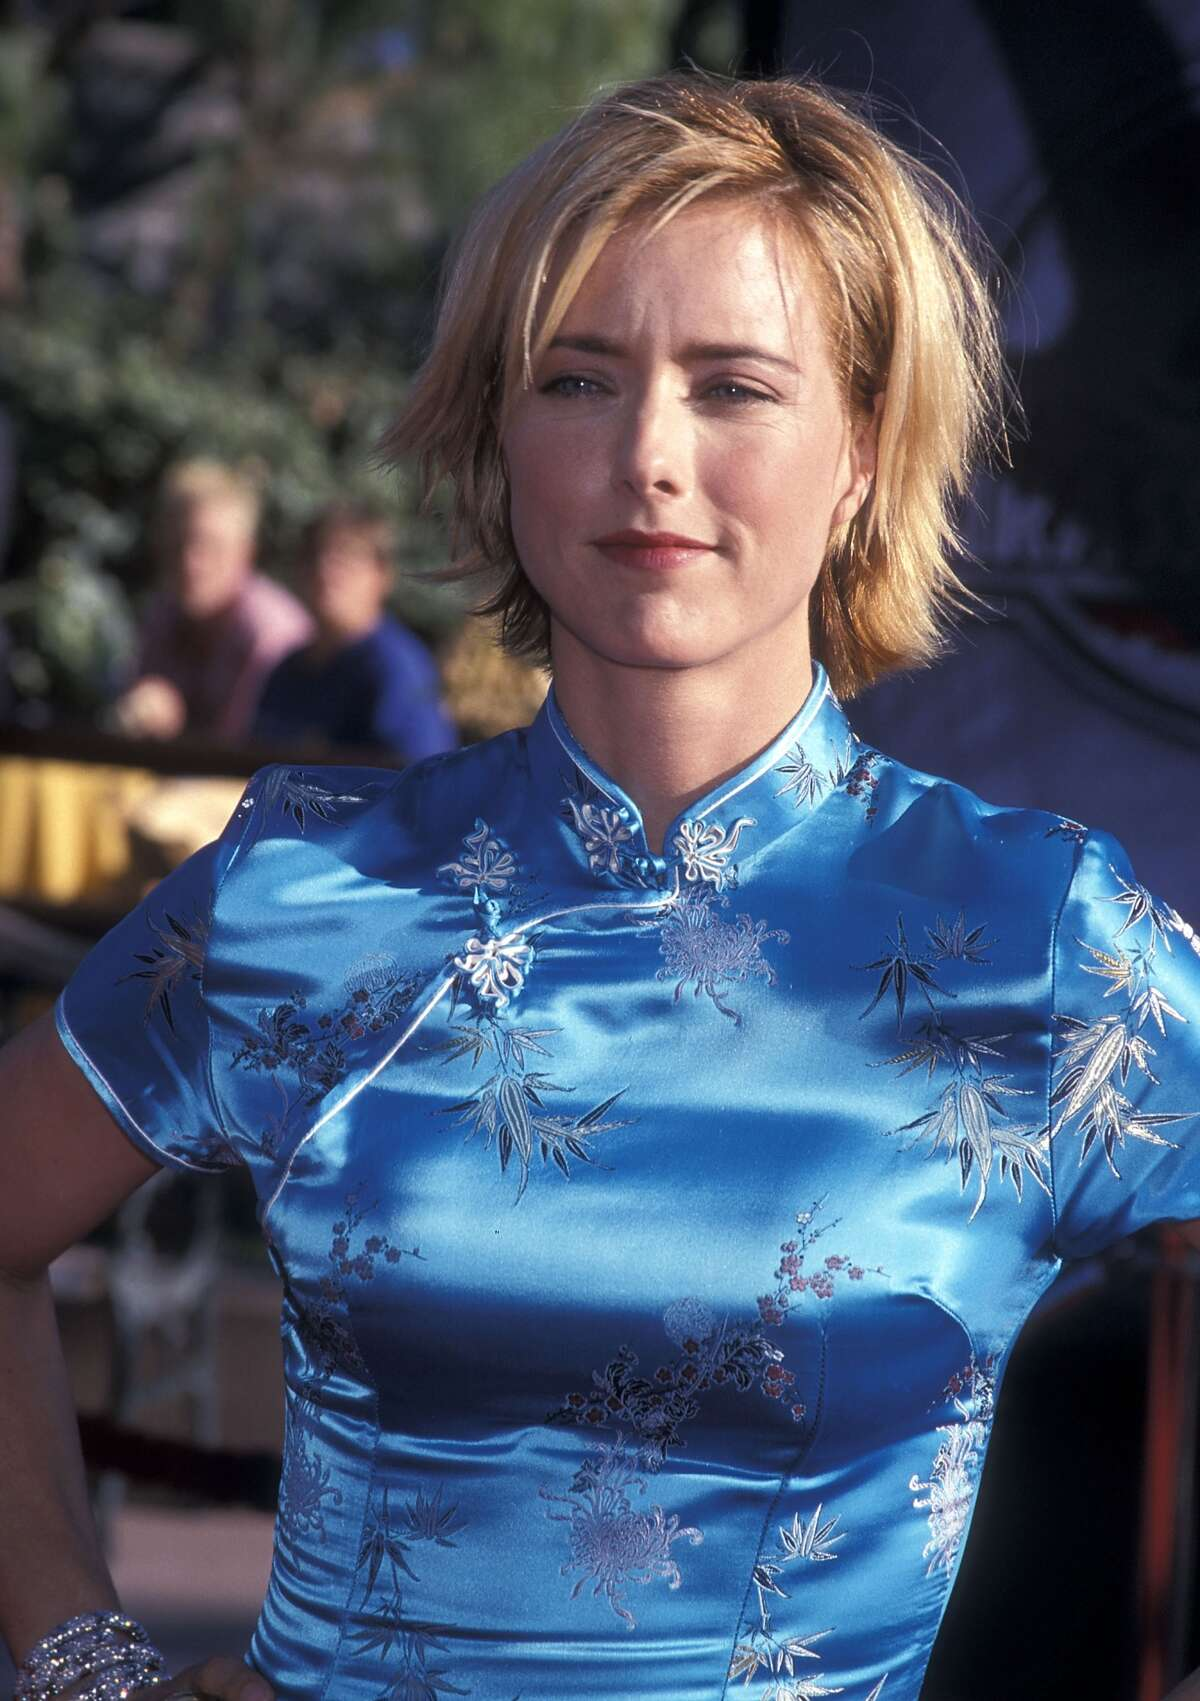 As Tea Leoni proved, Asian-inspired fashions were still very much a thing.